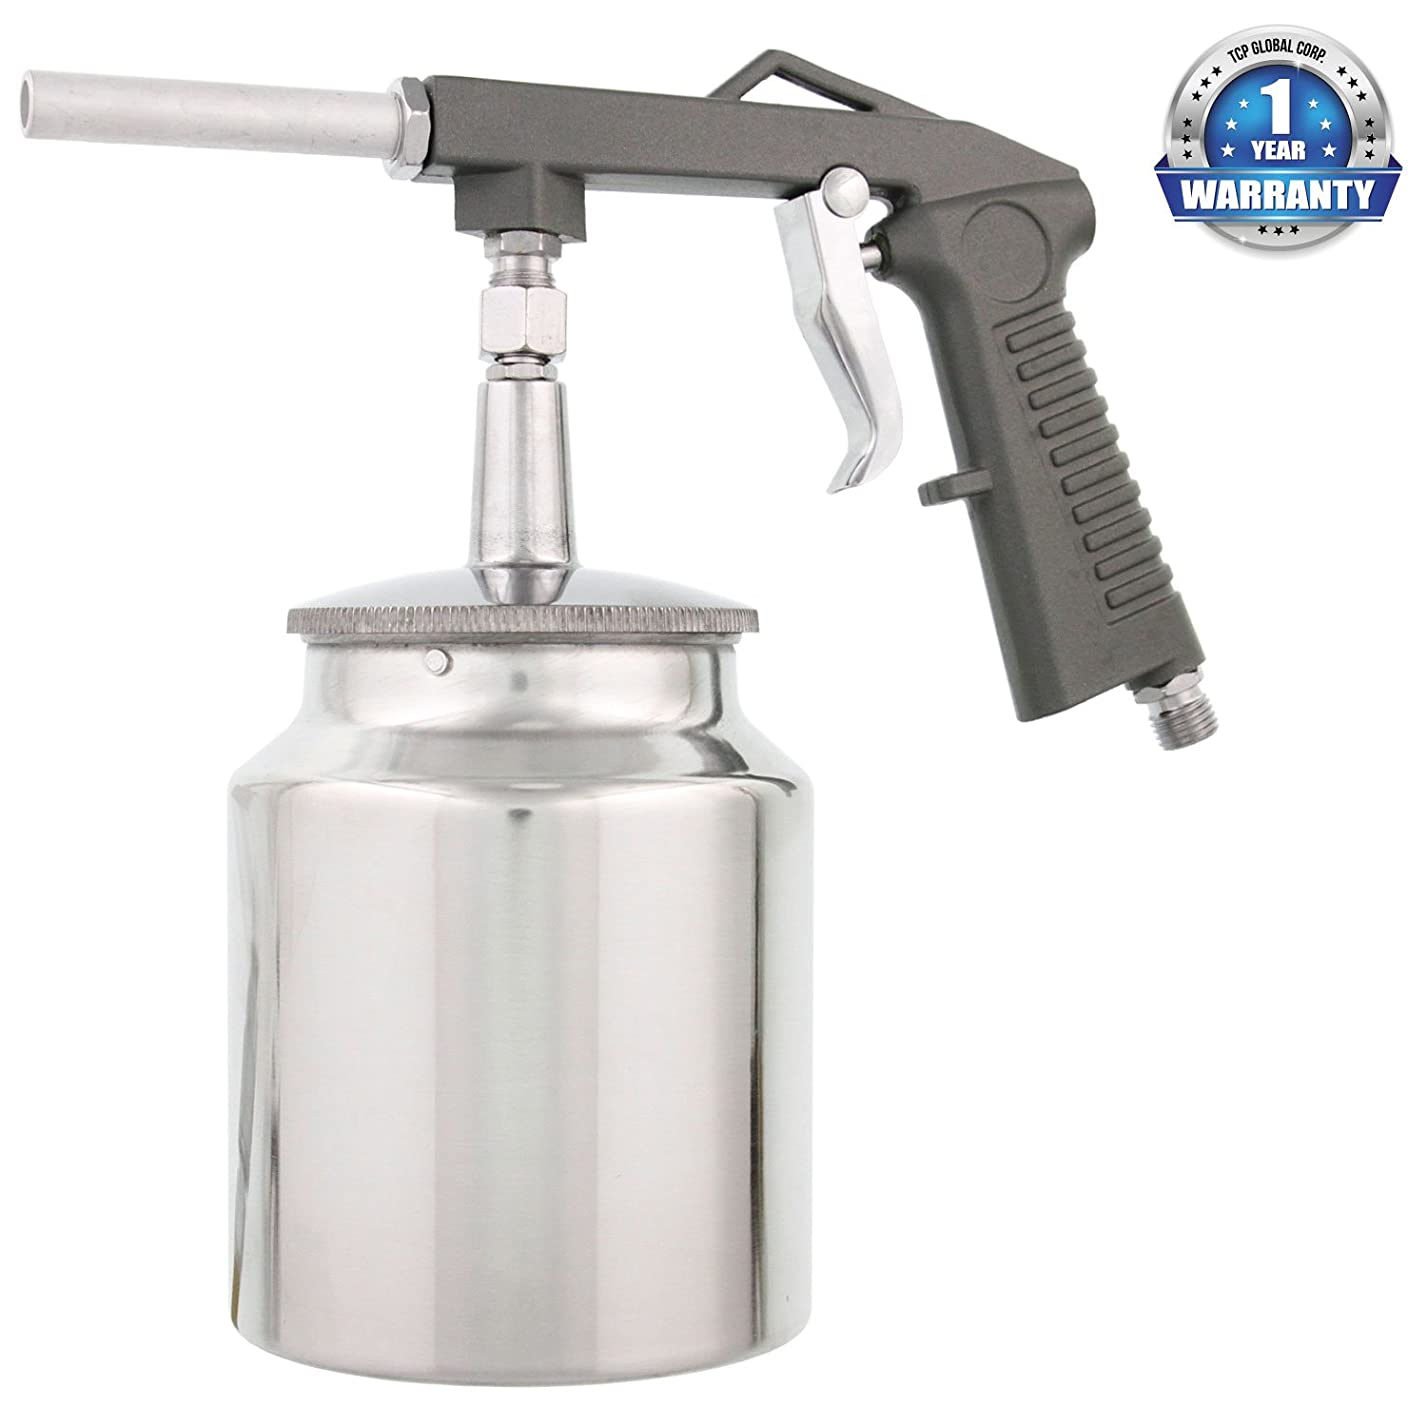 TCP Global Air Undercoating Spray Gun with Suction Feed Cup - Apply Sprayable Truck Bed Liner Coating, Rubberized Undercoat, Rust Proofing, Chip Guard Paint - Pneumatic Automotive Application Sprayer mi15248811